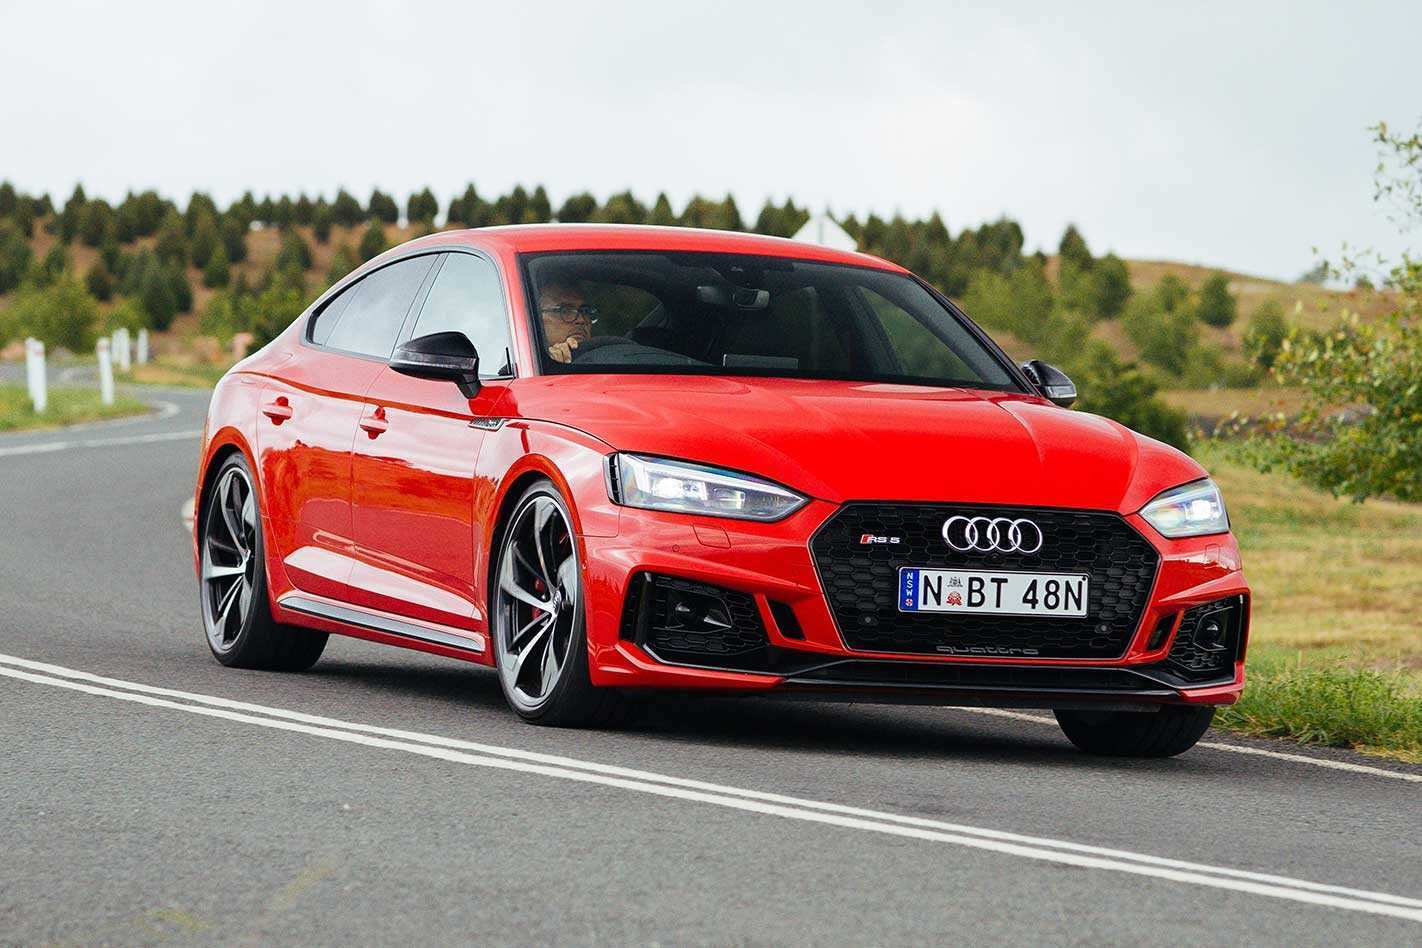 81 A 2019 Audi Rs5 First Drive